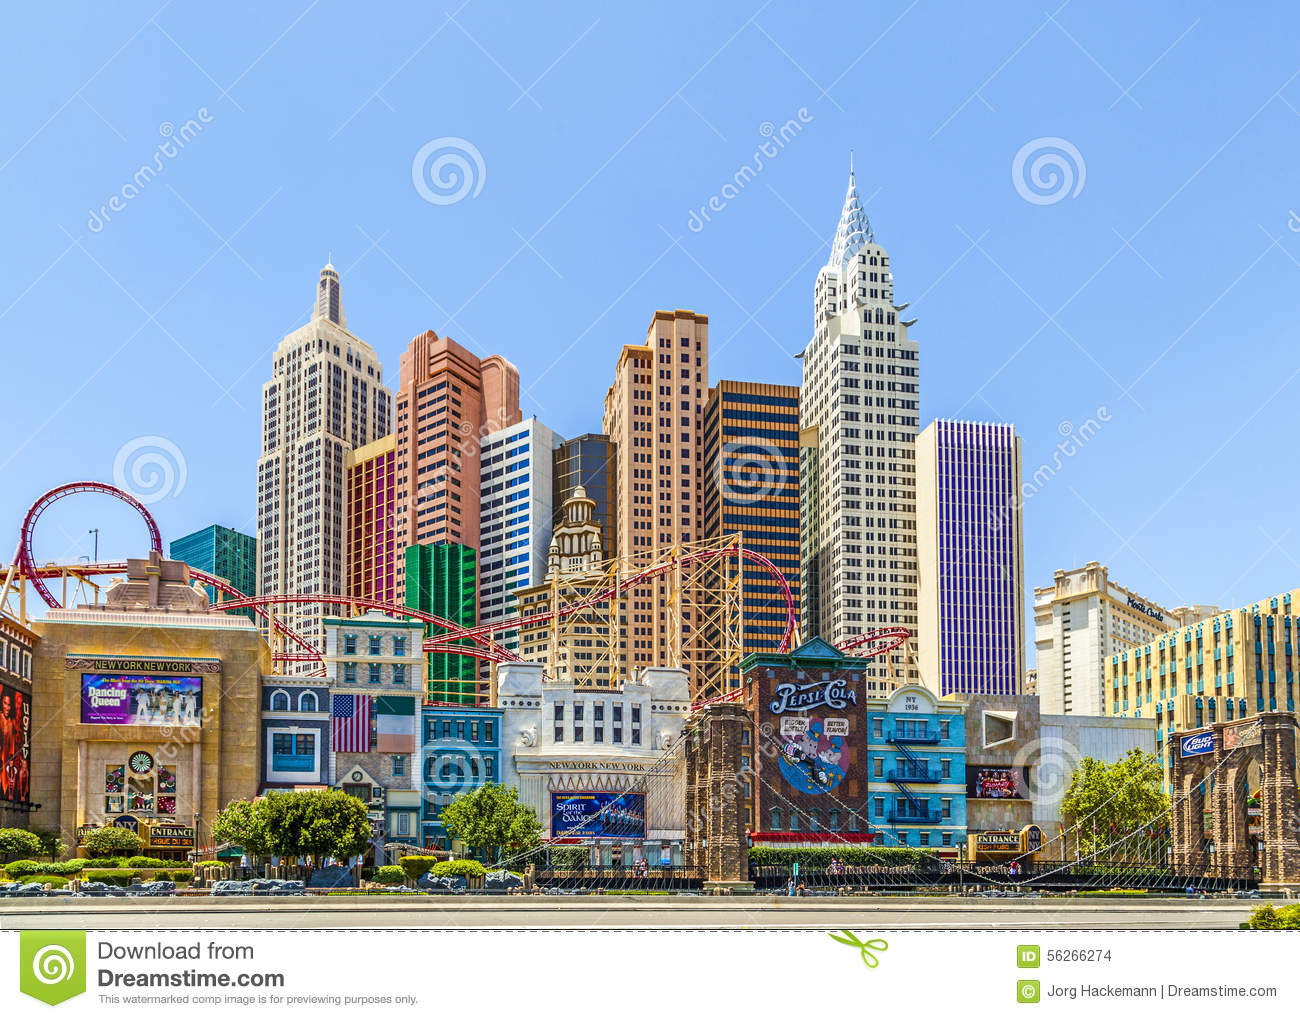 facade of new york new york hotel casino editorial stock image image of famous gamble. Black Bedroom Furniture Sets. Home Design Ideas